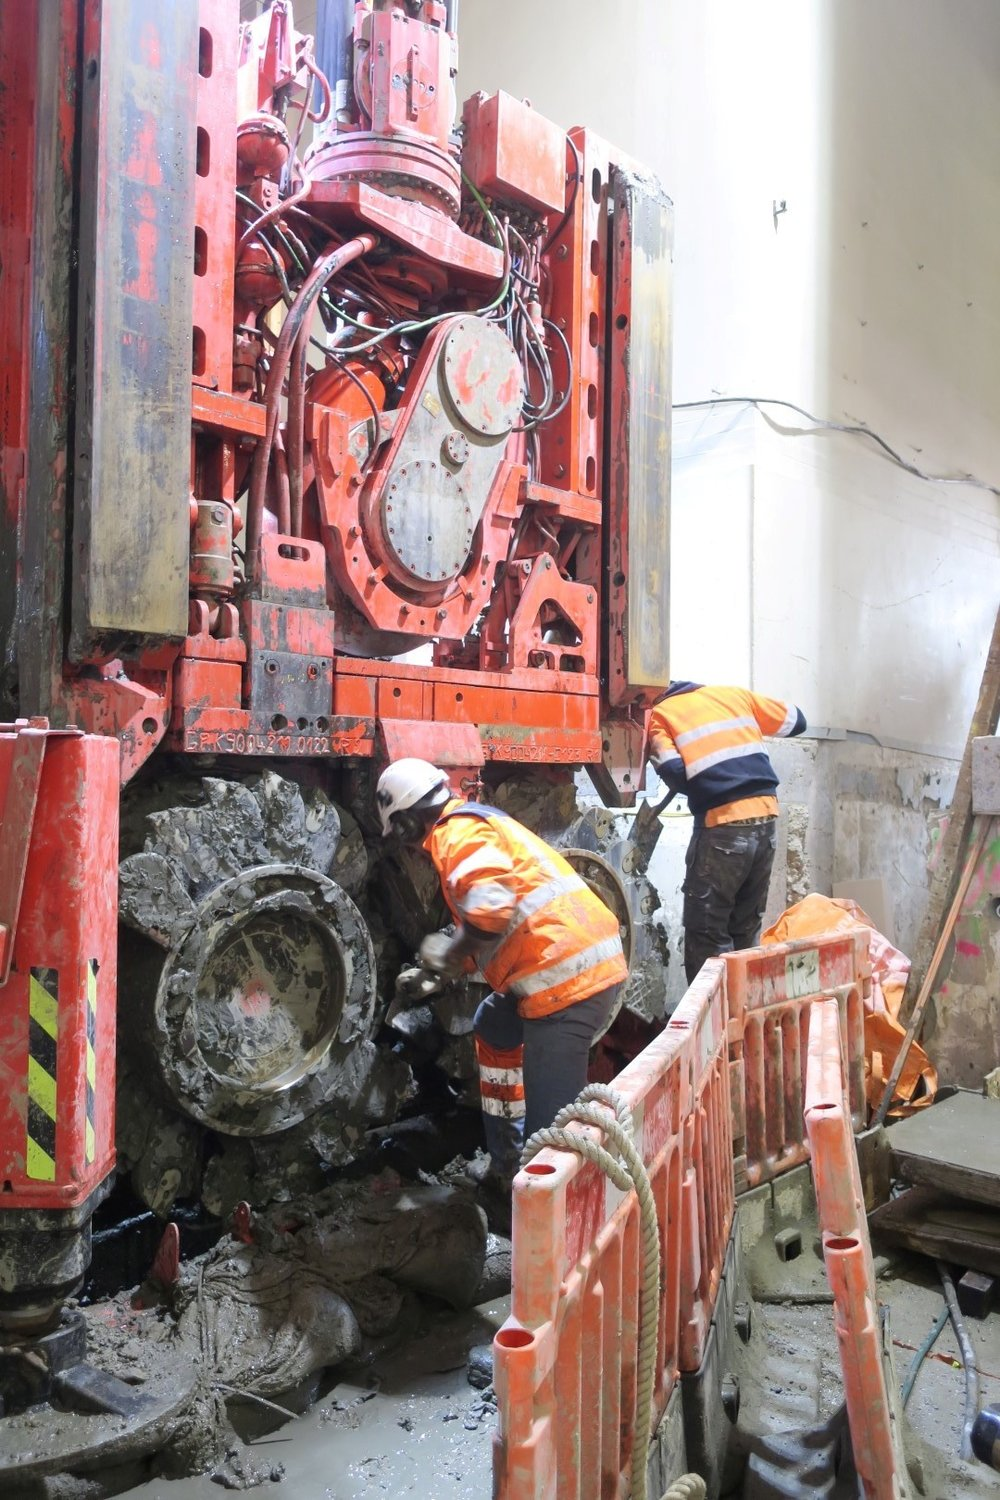 This bright red 90 tonne piling rig named Sandrine worked inside the historic Chief Post Office (Britomart Transport Centre) building until being returned to France in early 2018.